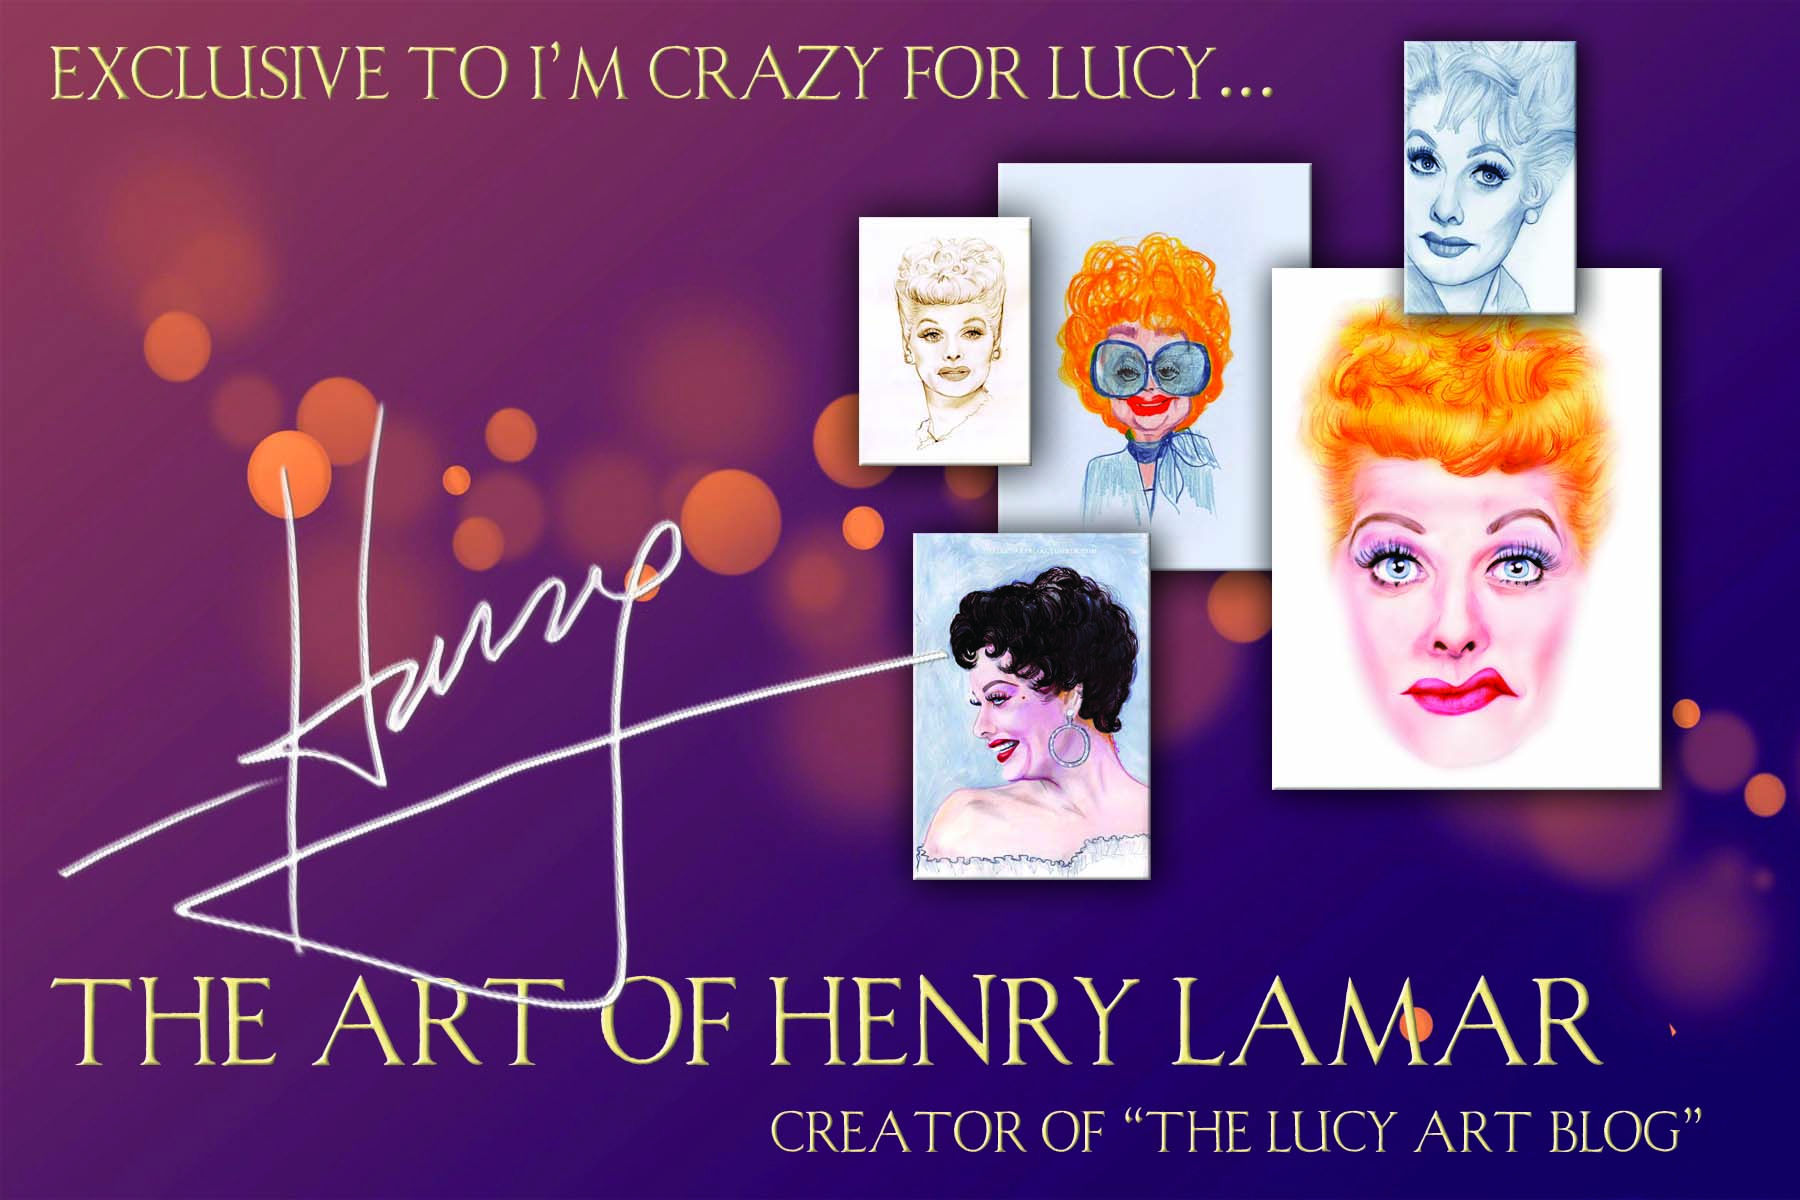 The Art of Henry Lamar